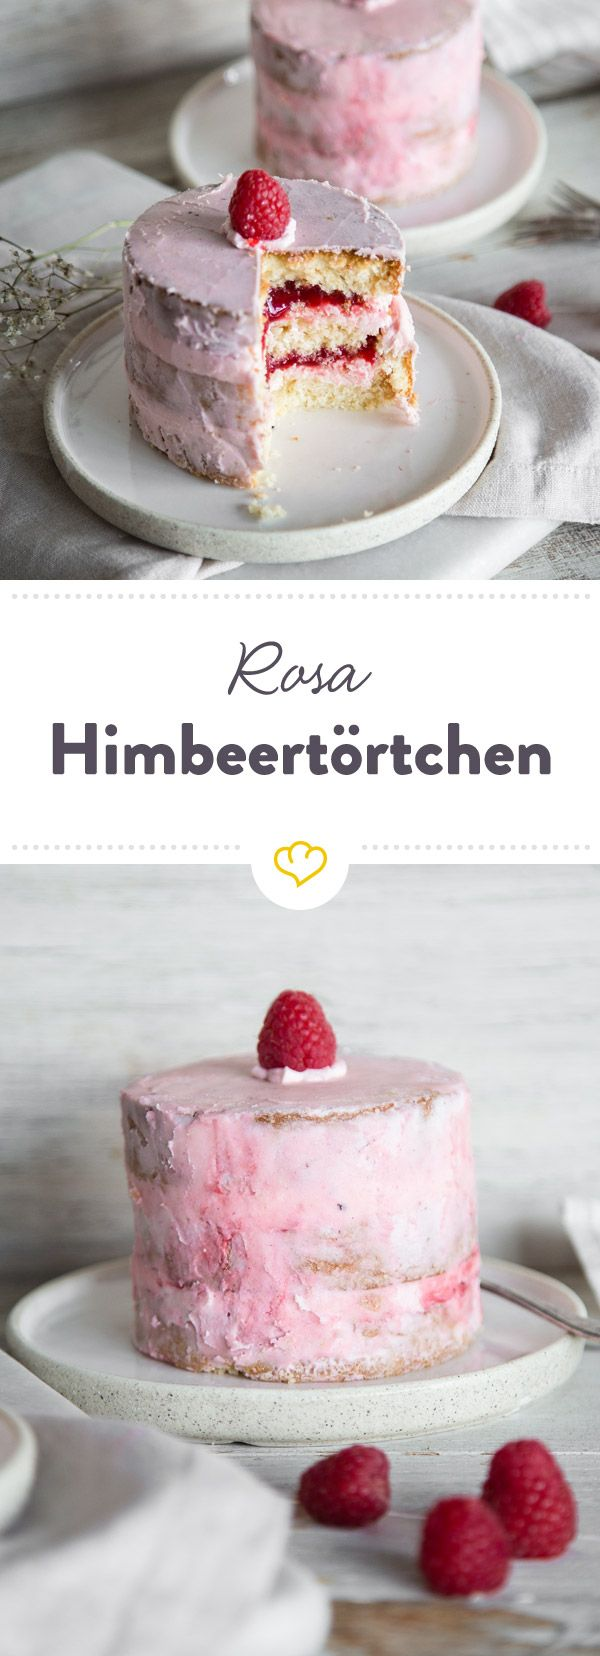 rosa himbeert rtchen rezept backen pinterest kuchen himbeeren und dessert. Black Bedroom Furniture Sets. Home Design Ideas